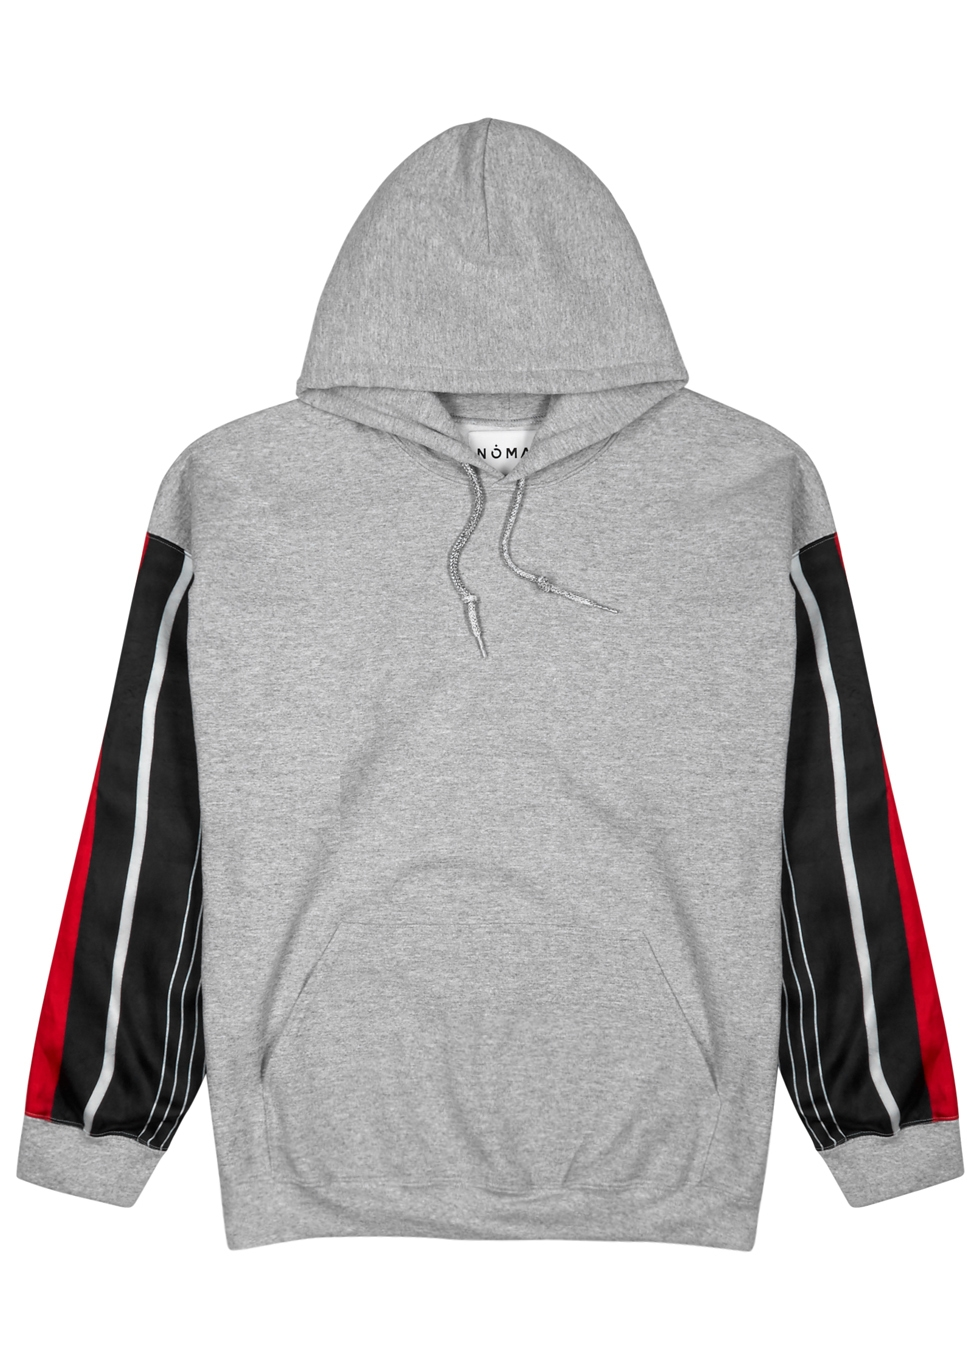 NOMA T.D Grey Hooded Cotton-Blend Sweatshirt